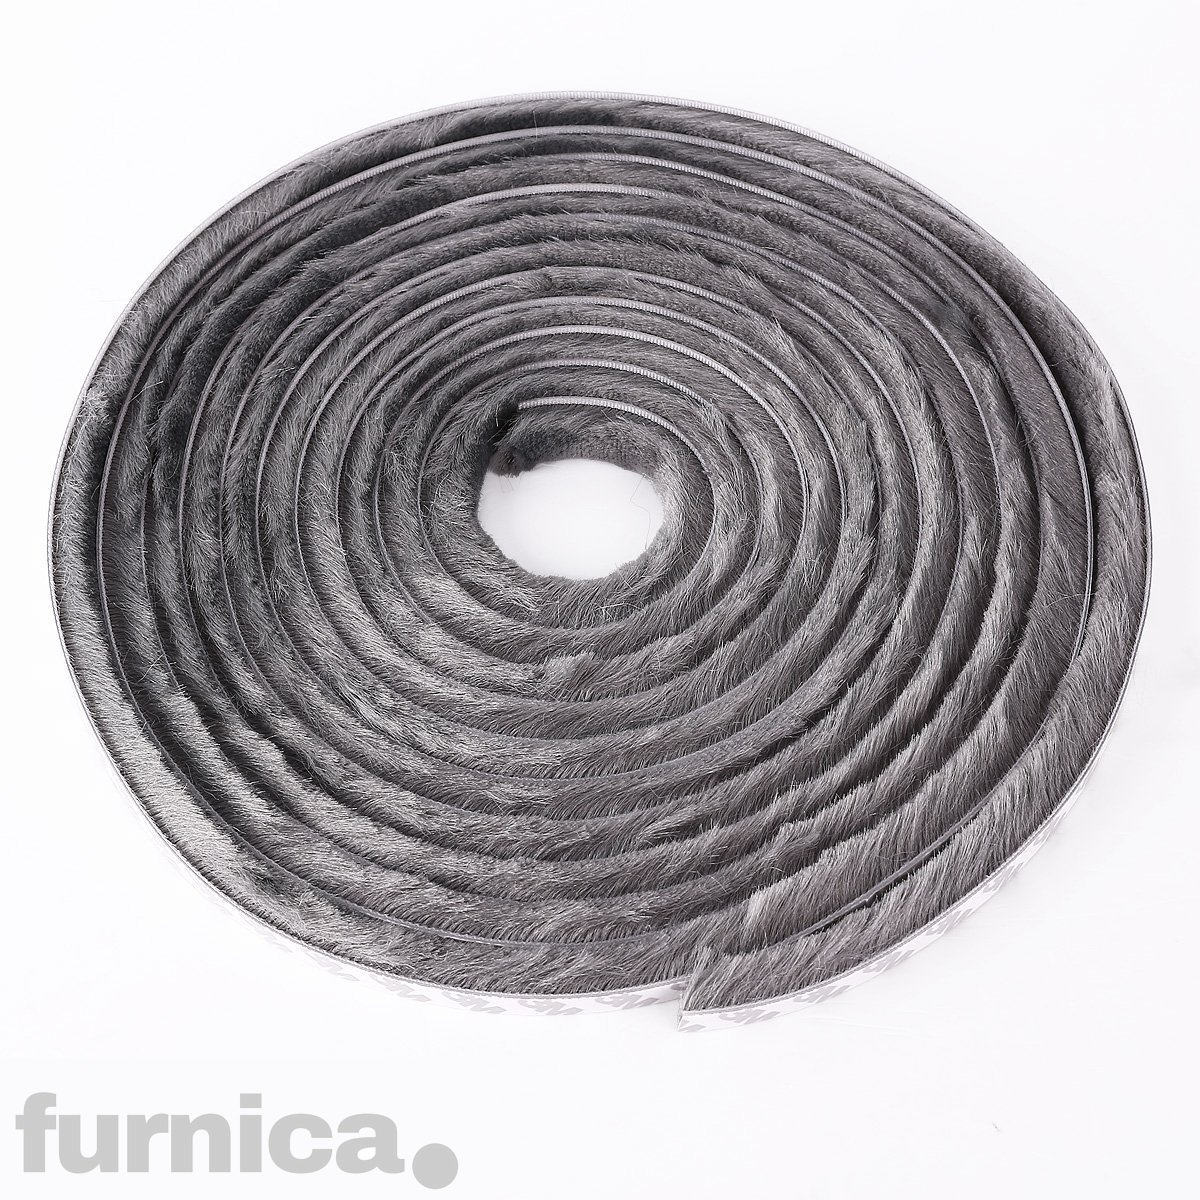 FURNICA Grey Self-Adhesive Brush for Windows/Doors Draught Excluder Strip (Height 9mm - 10m)